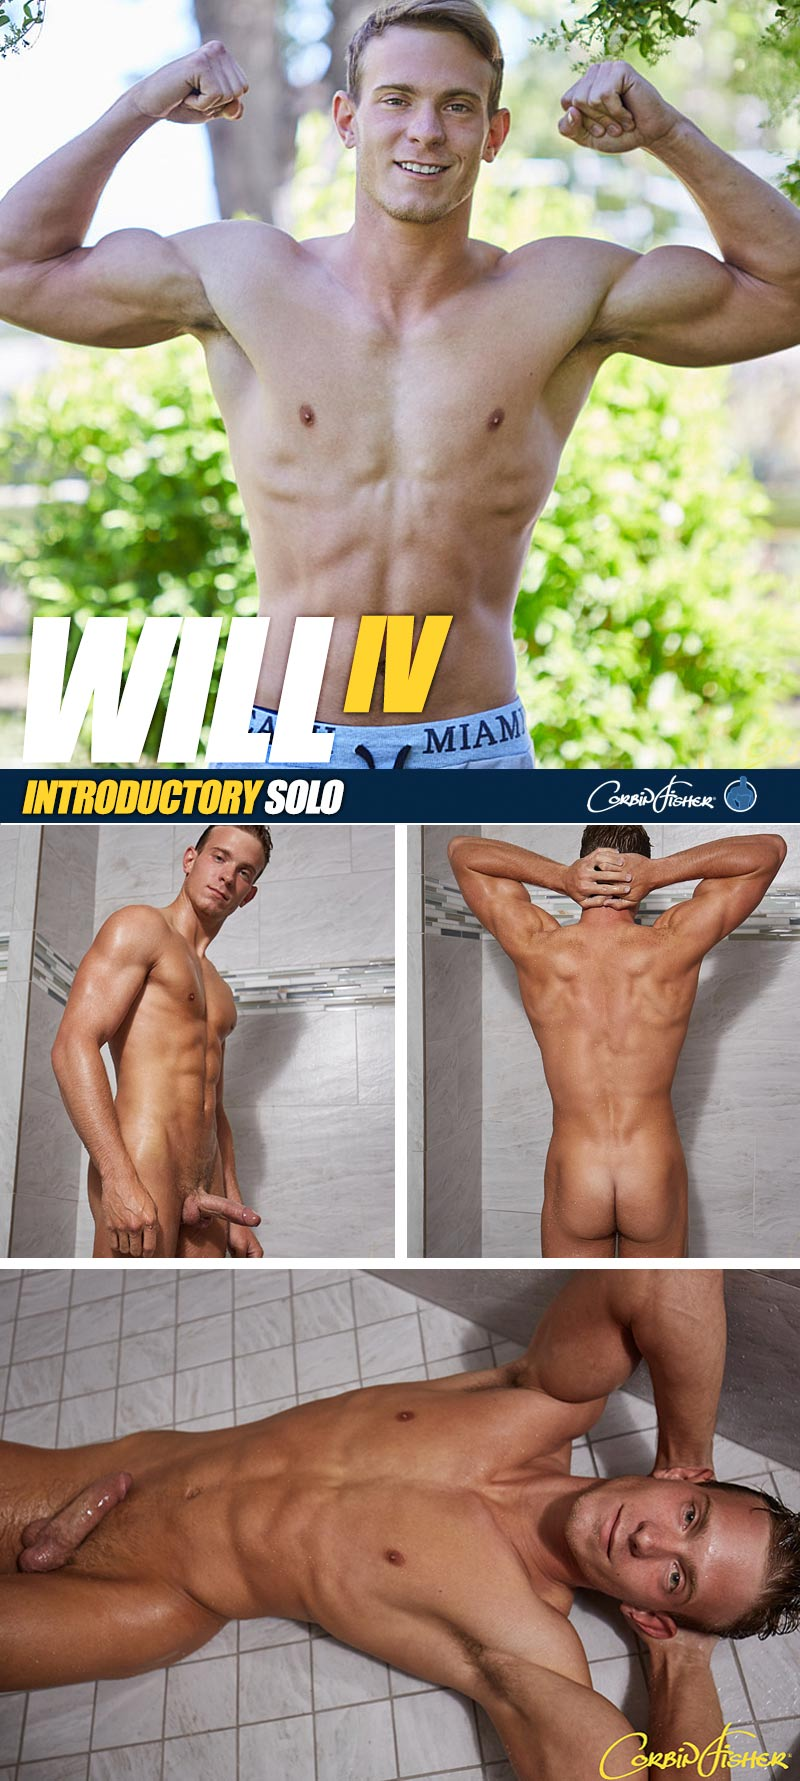 Will (IV) at CorbinFisher